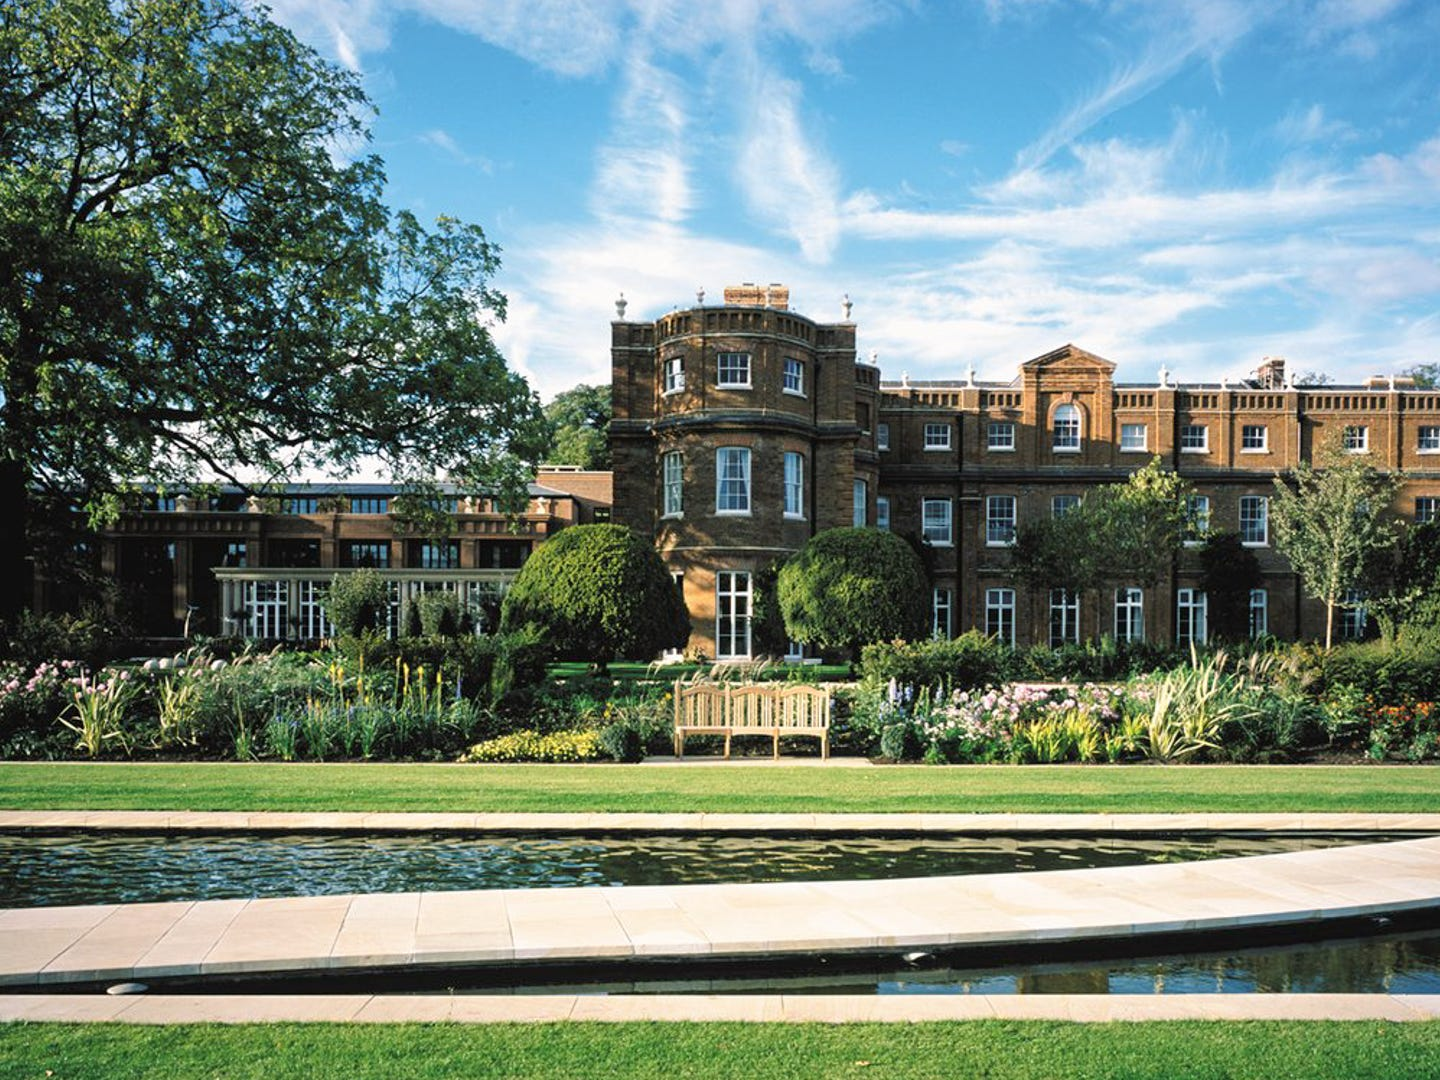 The Grove in Hertfordshire, from $289 per night. One of London's premier country estates, the Grove has racked up an impressive list of accolades, honored for everything from the spa to the golf course to the food. Set on 300 acres of lush greenery, the property was the former home of the Earls of Clarendon, meaning you'll enjoy a bit of history while staying at this hotel. The Grove has hosted everyone from former President Barack Obama to former British Prime Minister David Cameron to Queen Victoria.